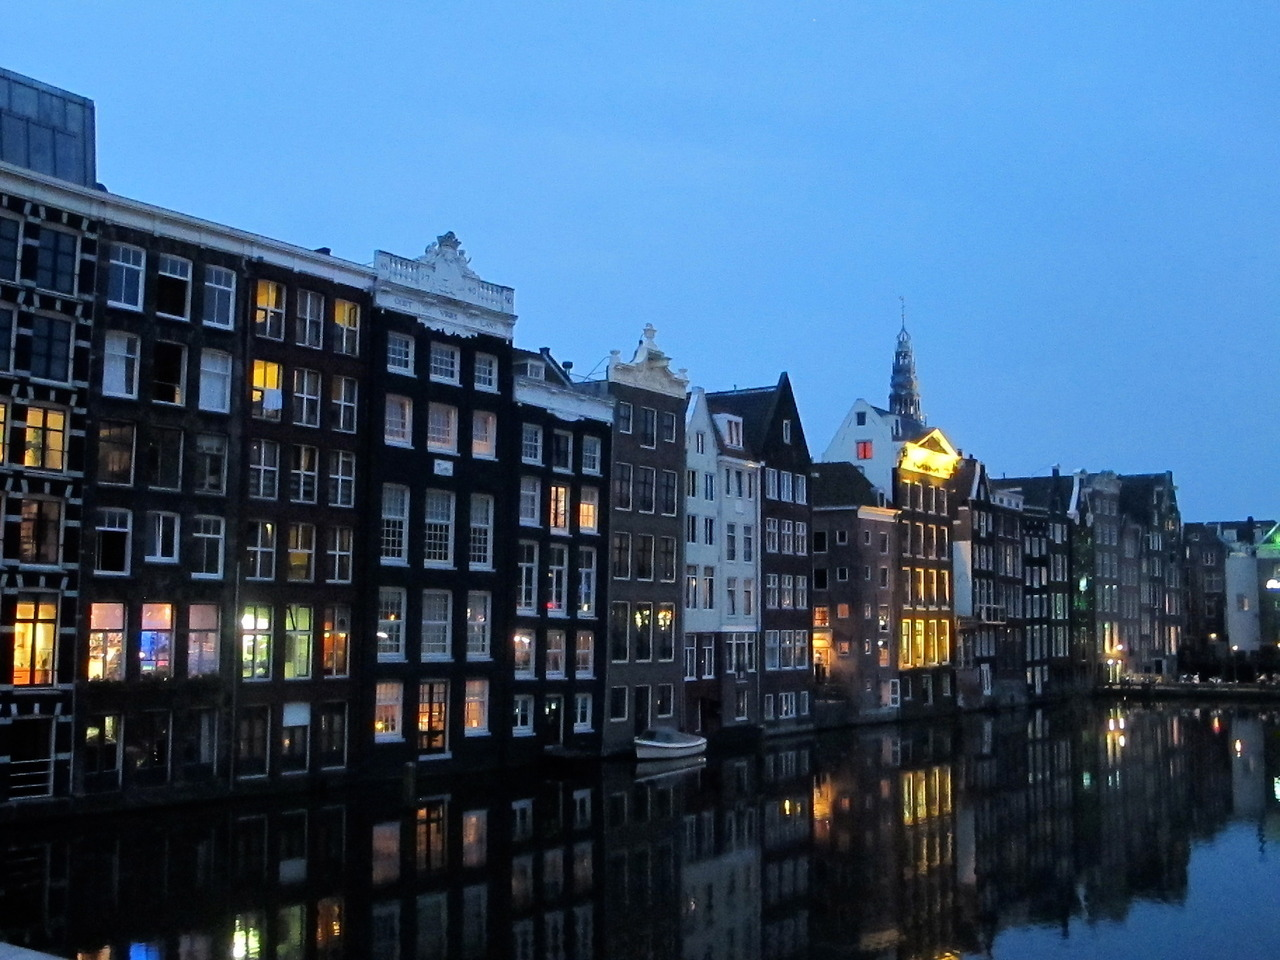 Favorite photo I took in Amsterdam this past summer.